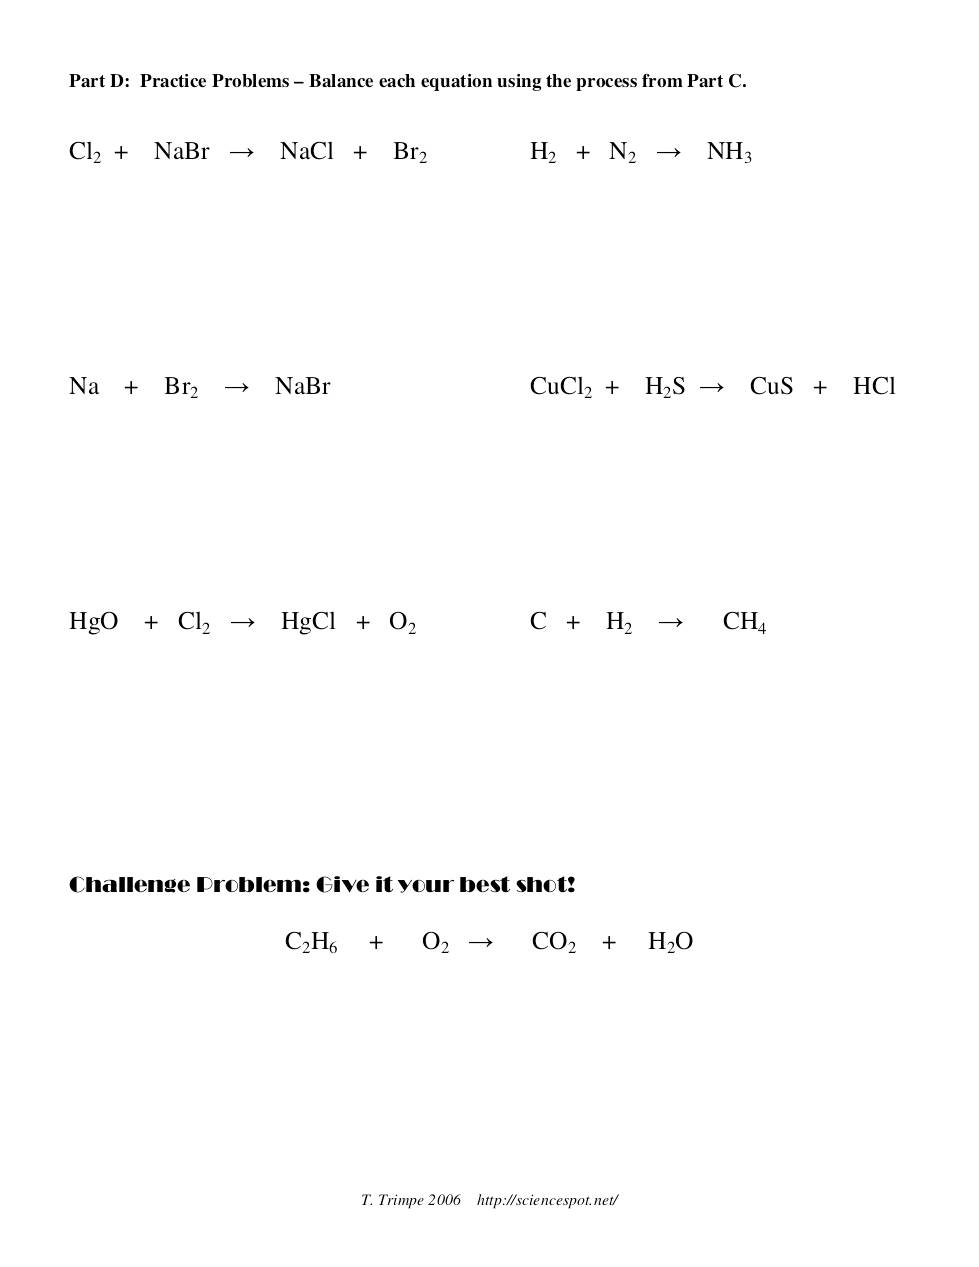 worksheet Balancing Equations Practice Worksheet Answer Key balancing equations practice dochub page 1 of 4